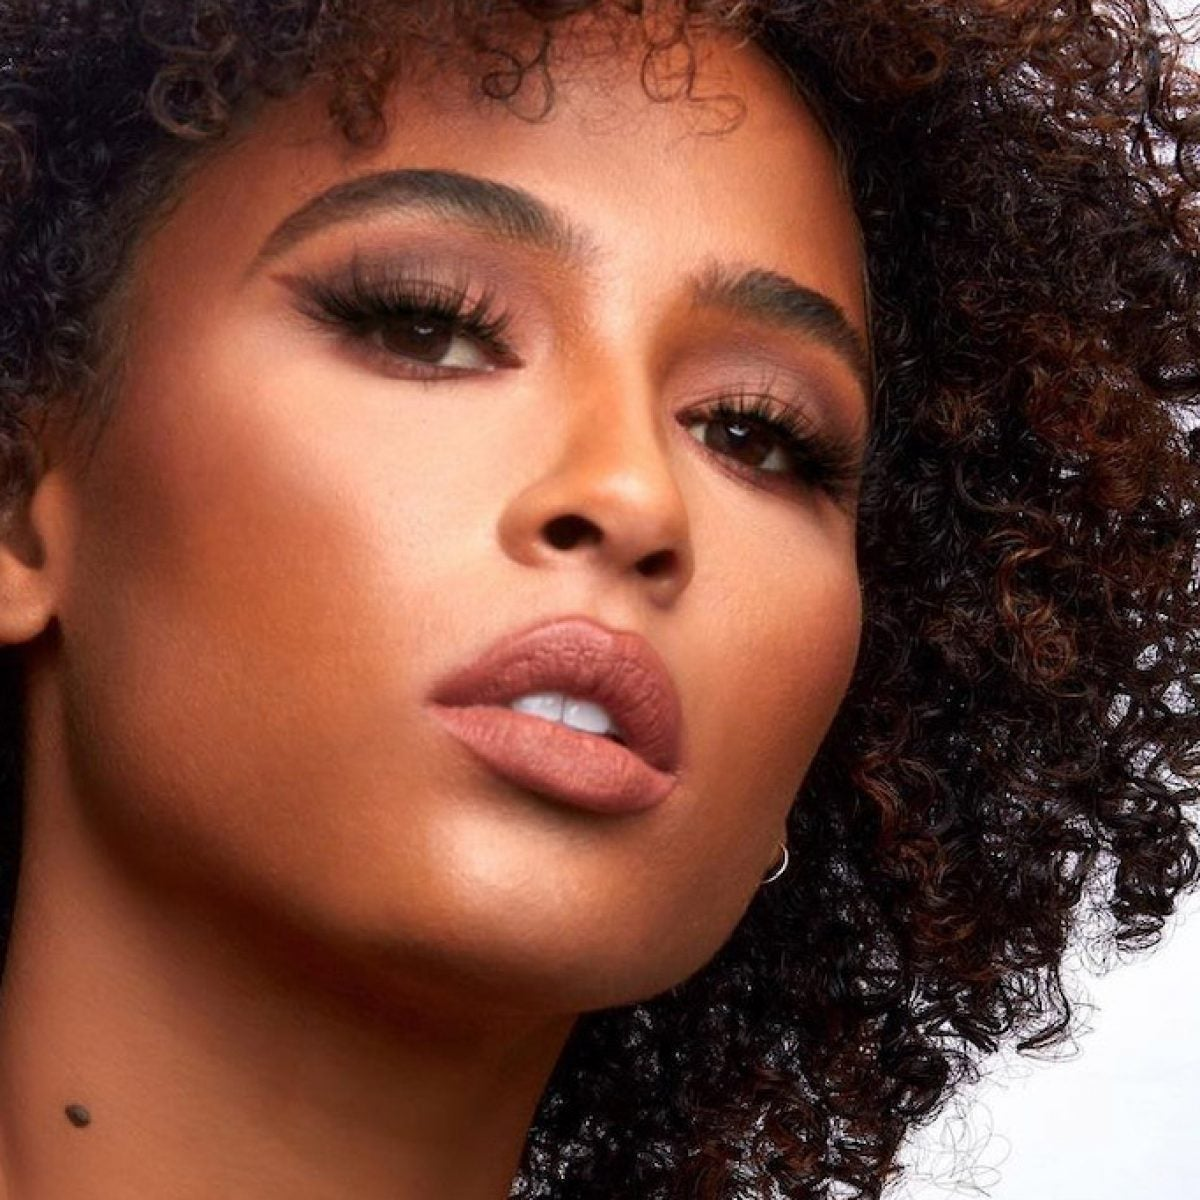 A New Makeup Collection Inspired By HBO's 'Insecure' Just Dropped